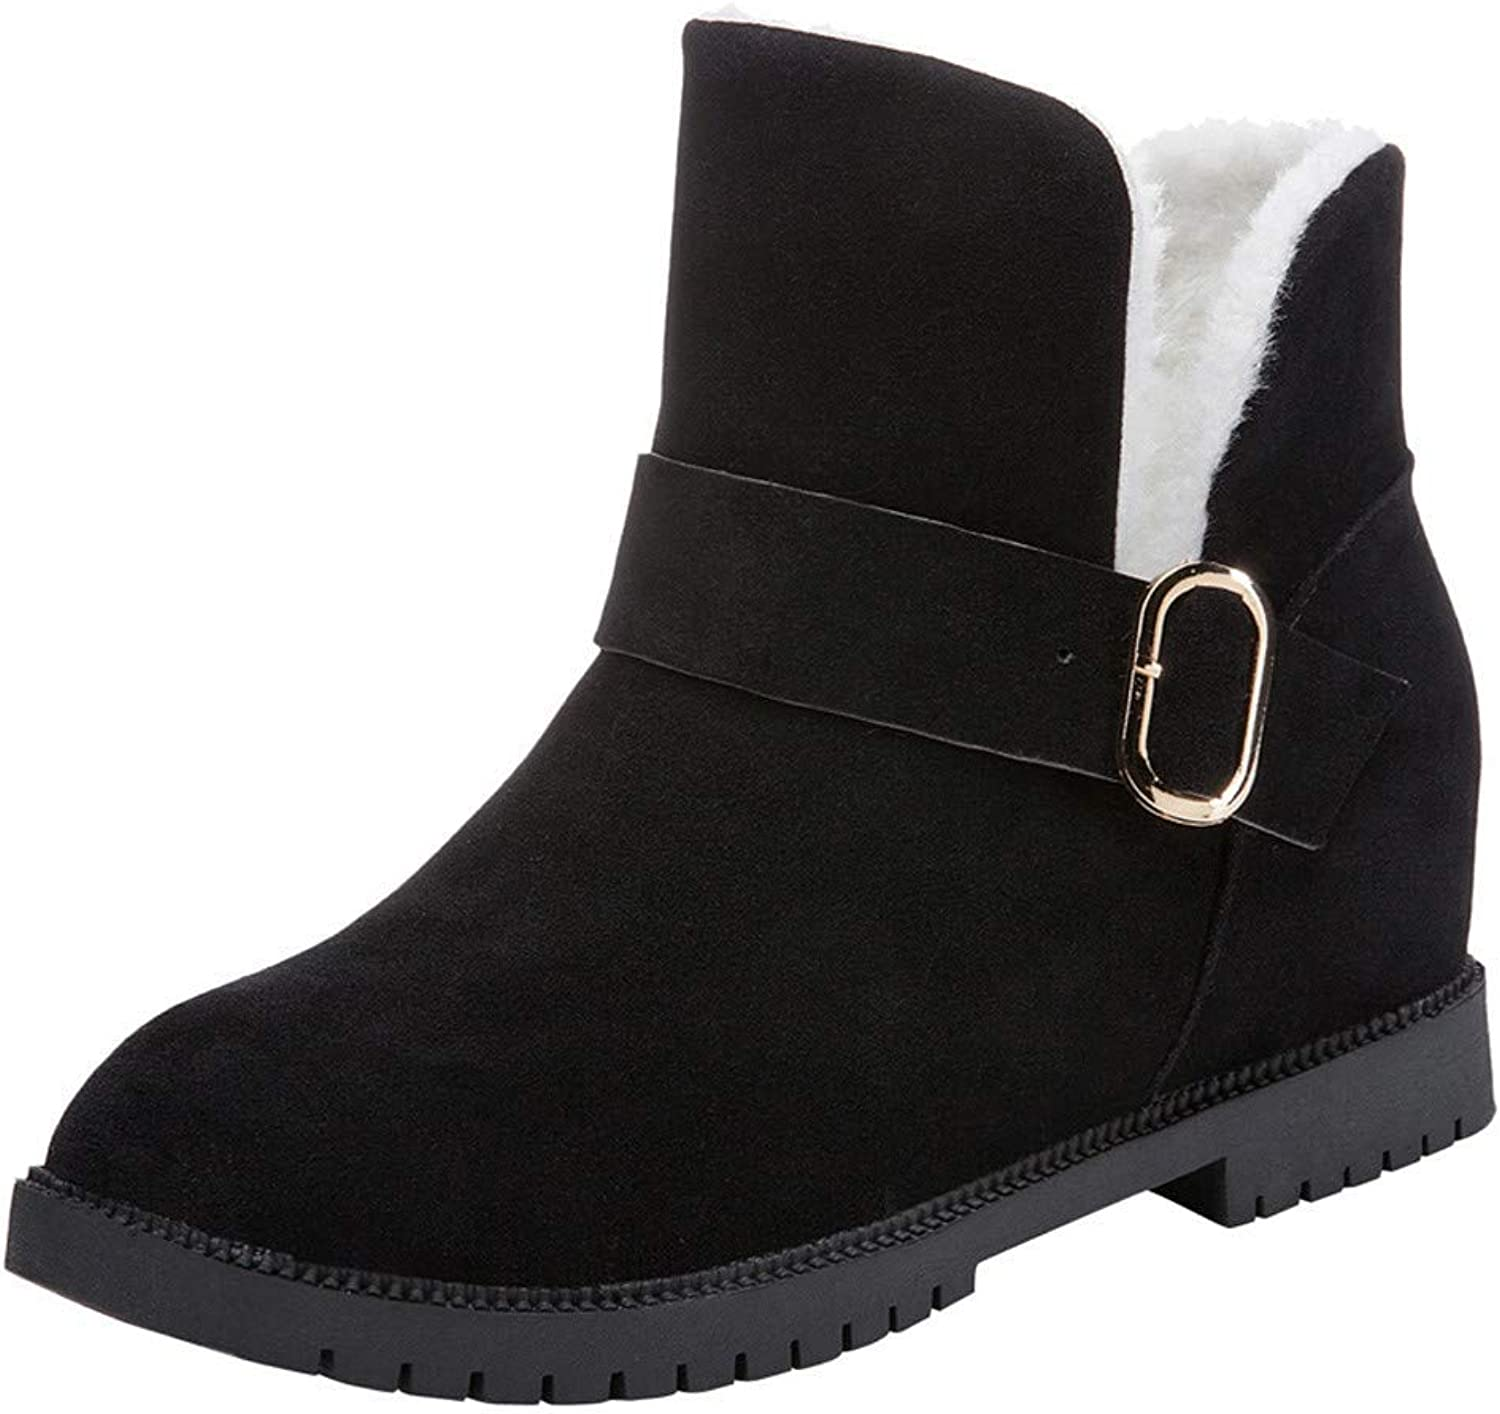 GouuoHi Womens Boots Women Wedges shoes Snow Boots Suede Buckle Boots Round Toe Keep Warm shoes Fashion Cosy Wild Casual Quality Super Elegant Leisure for Womens